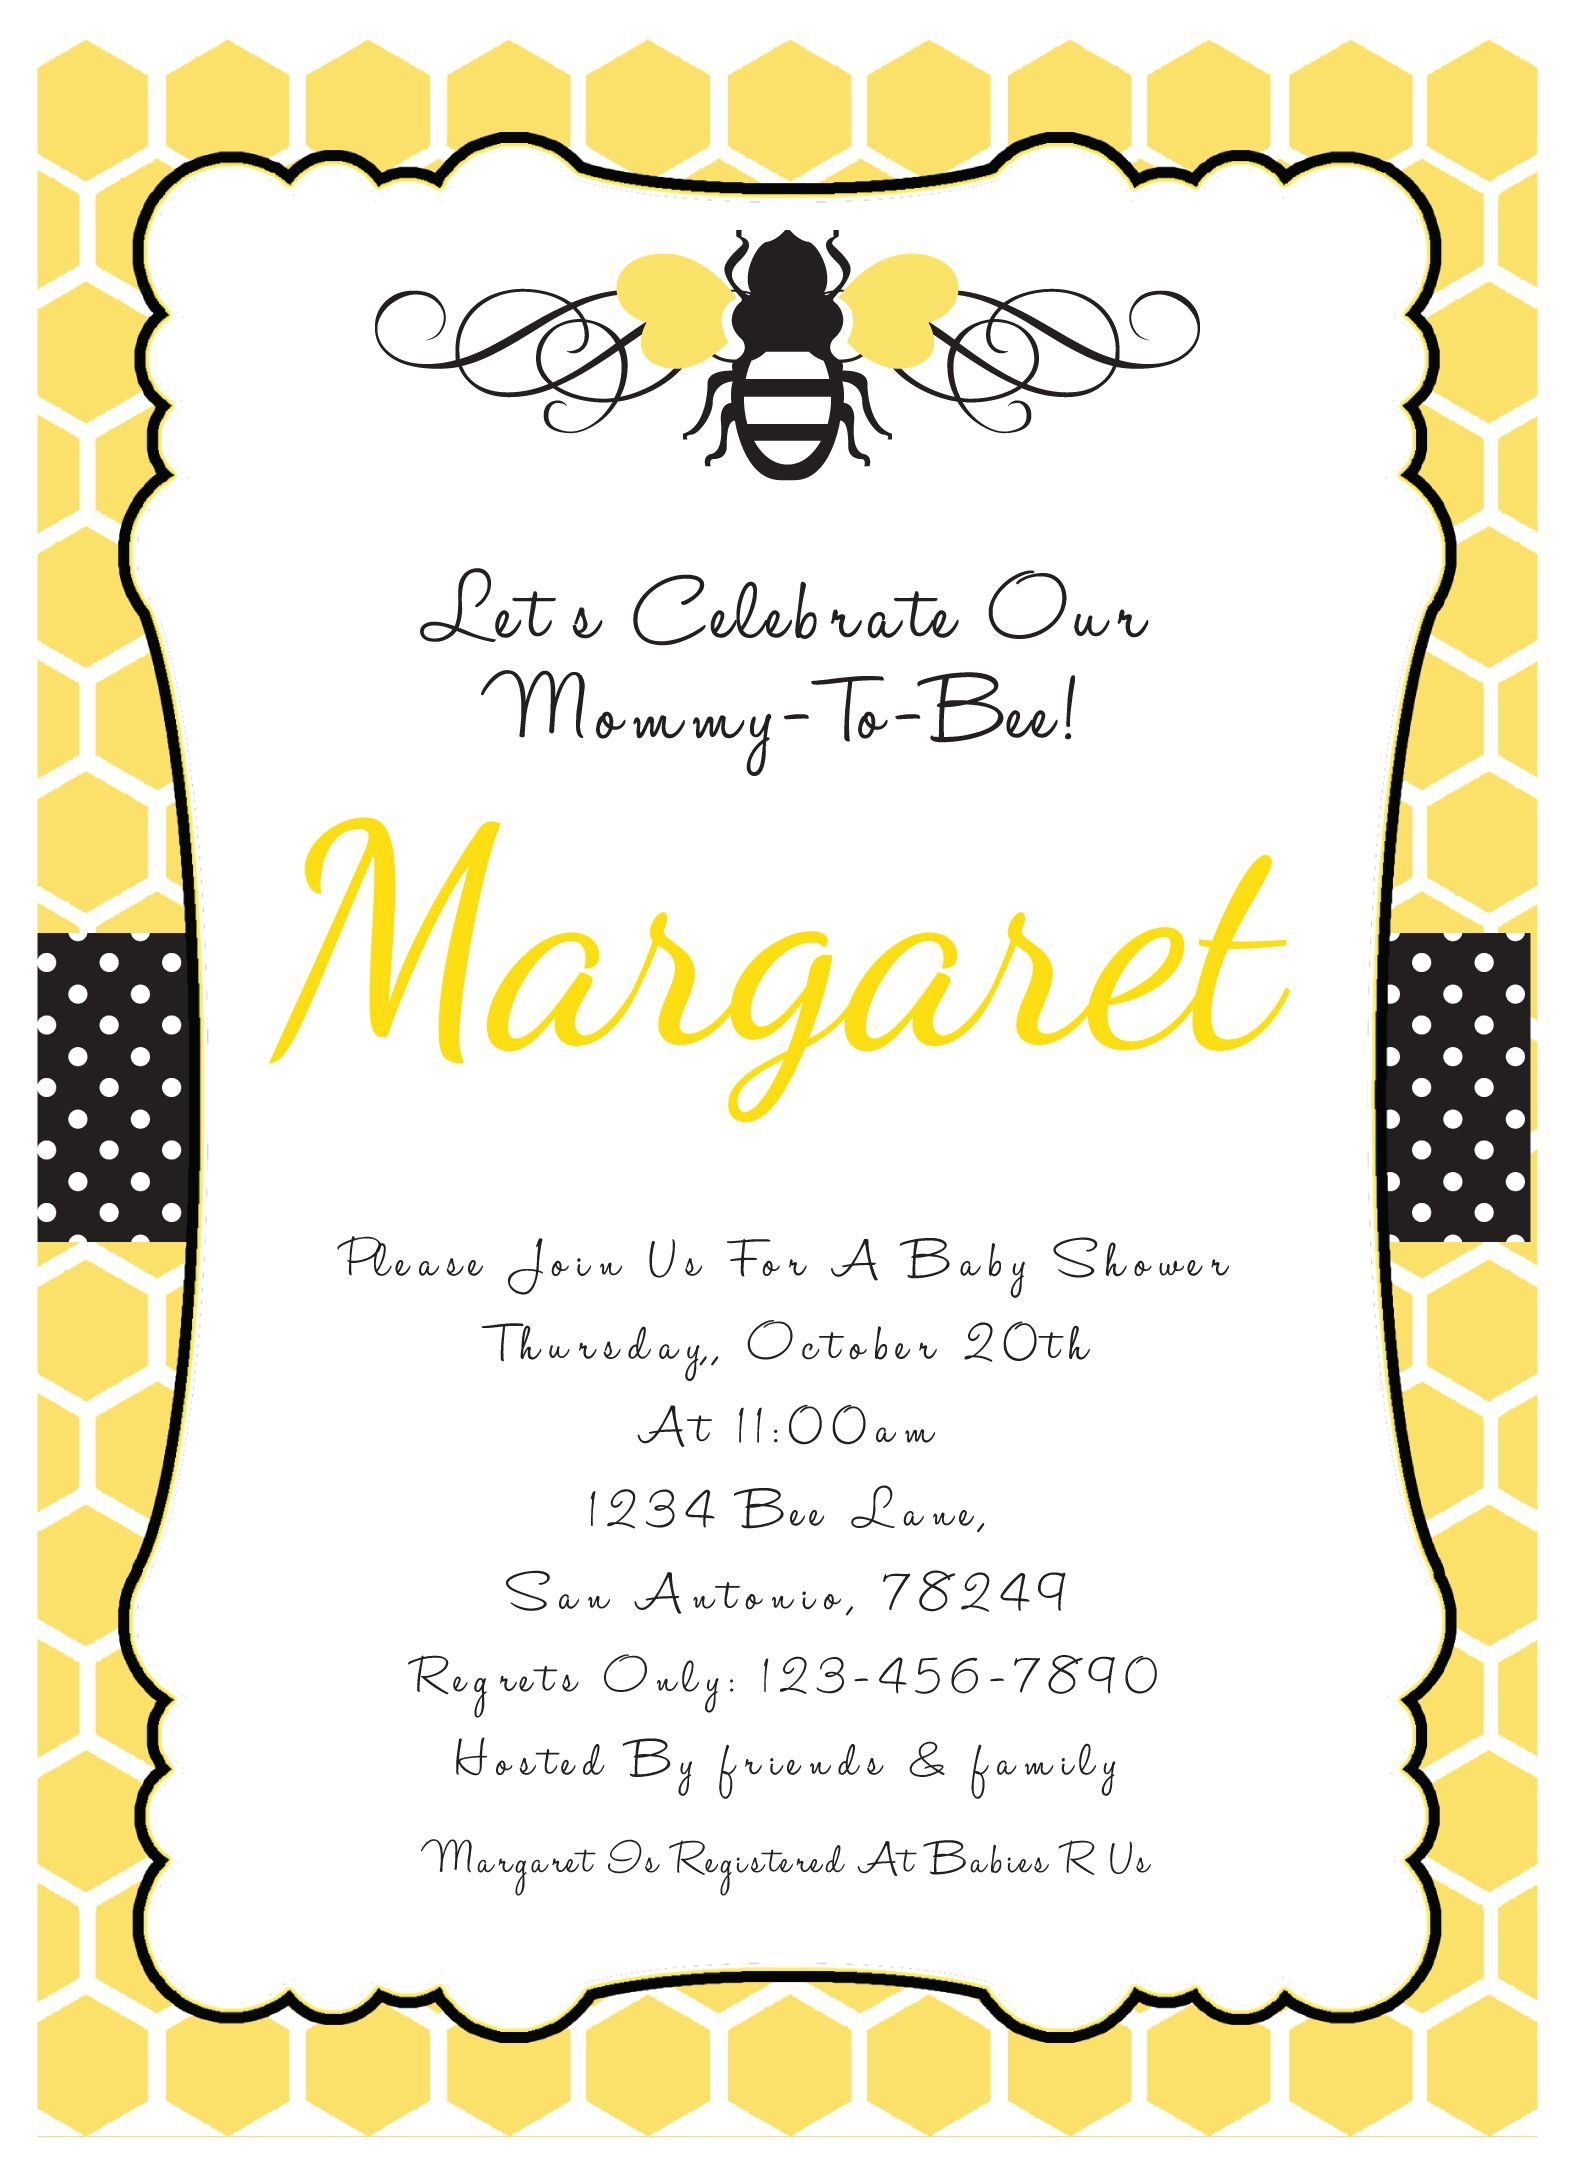 Bumble bee invitations baby shower google search baby stuff bumble bee invitations baby shower google search filmwisefo